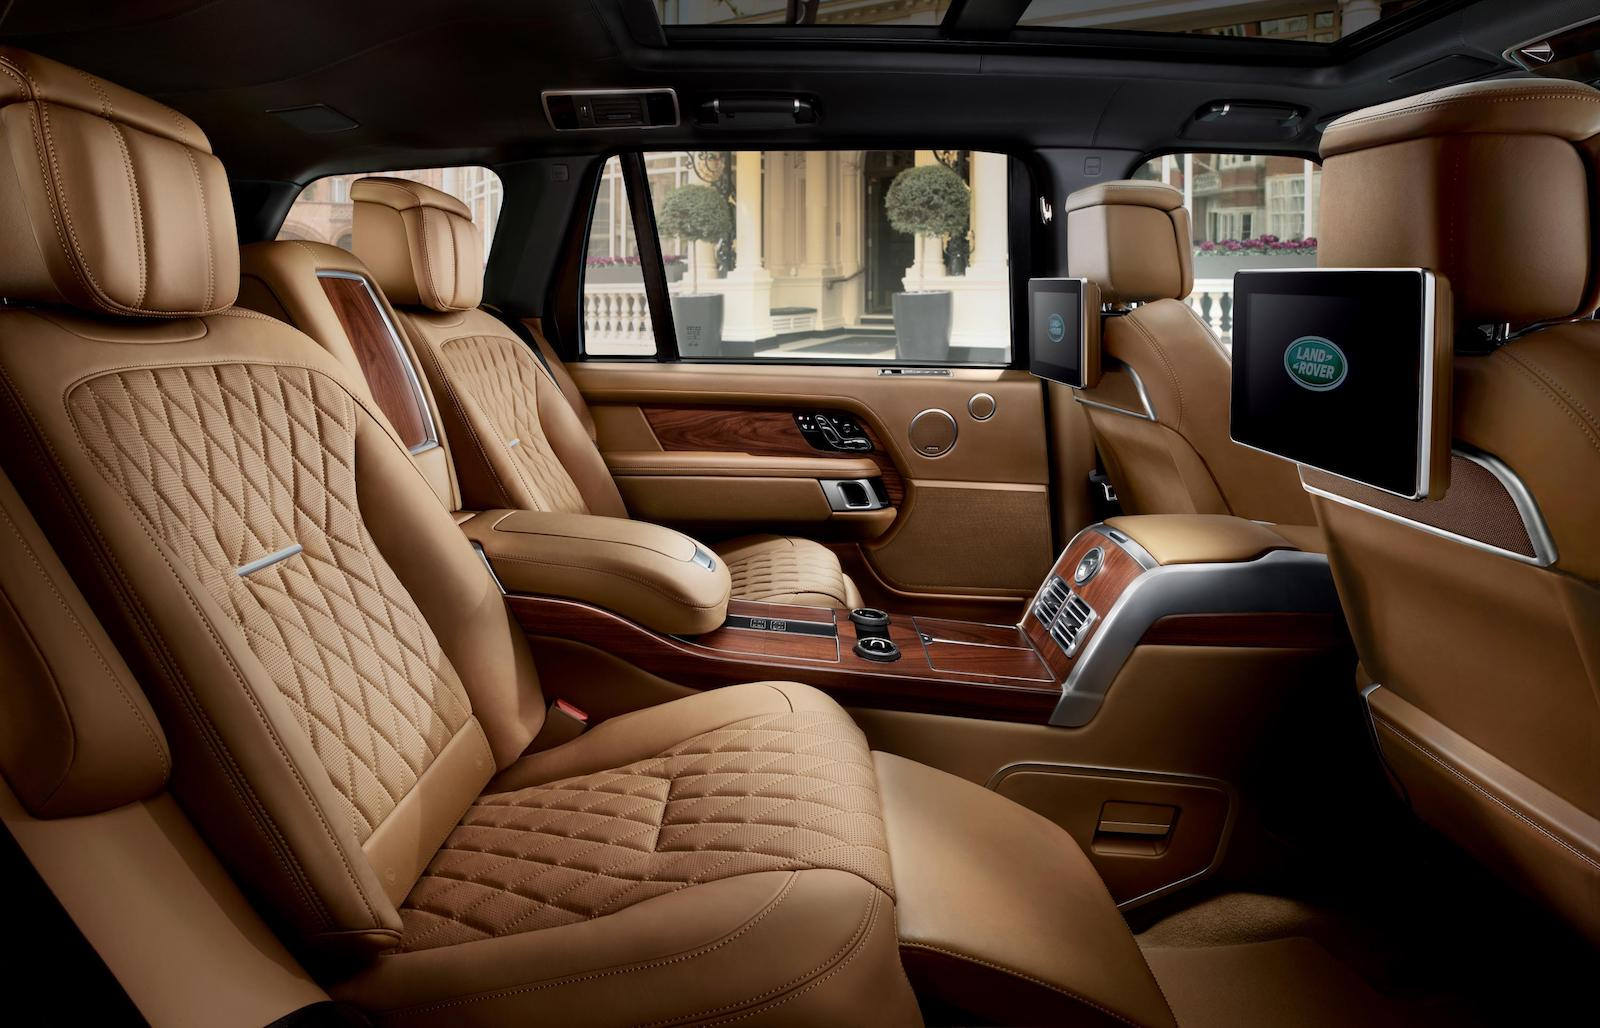 2018 Range Rover Autobiography-rear interior |